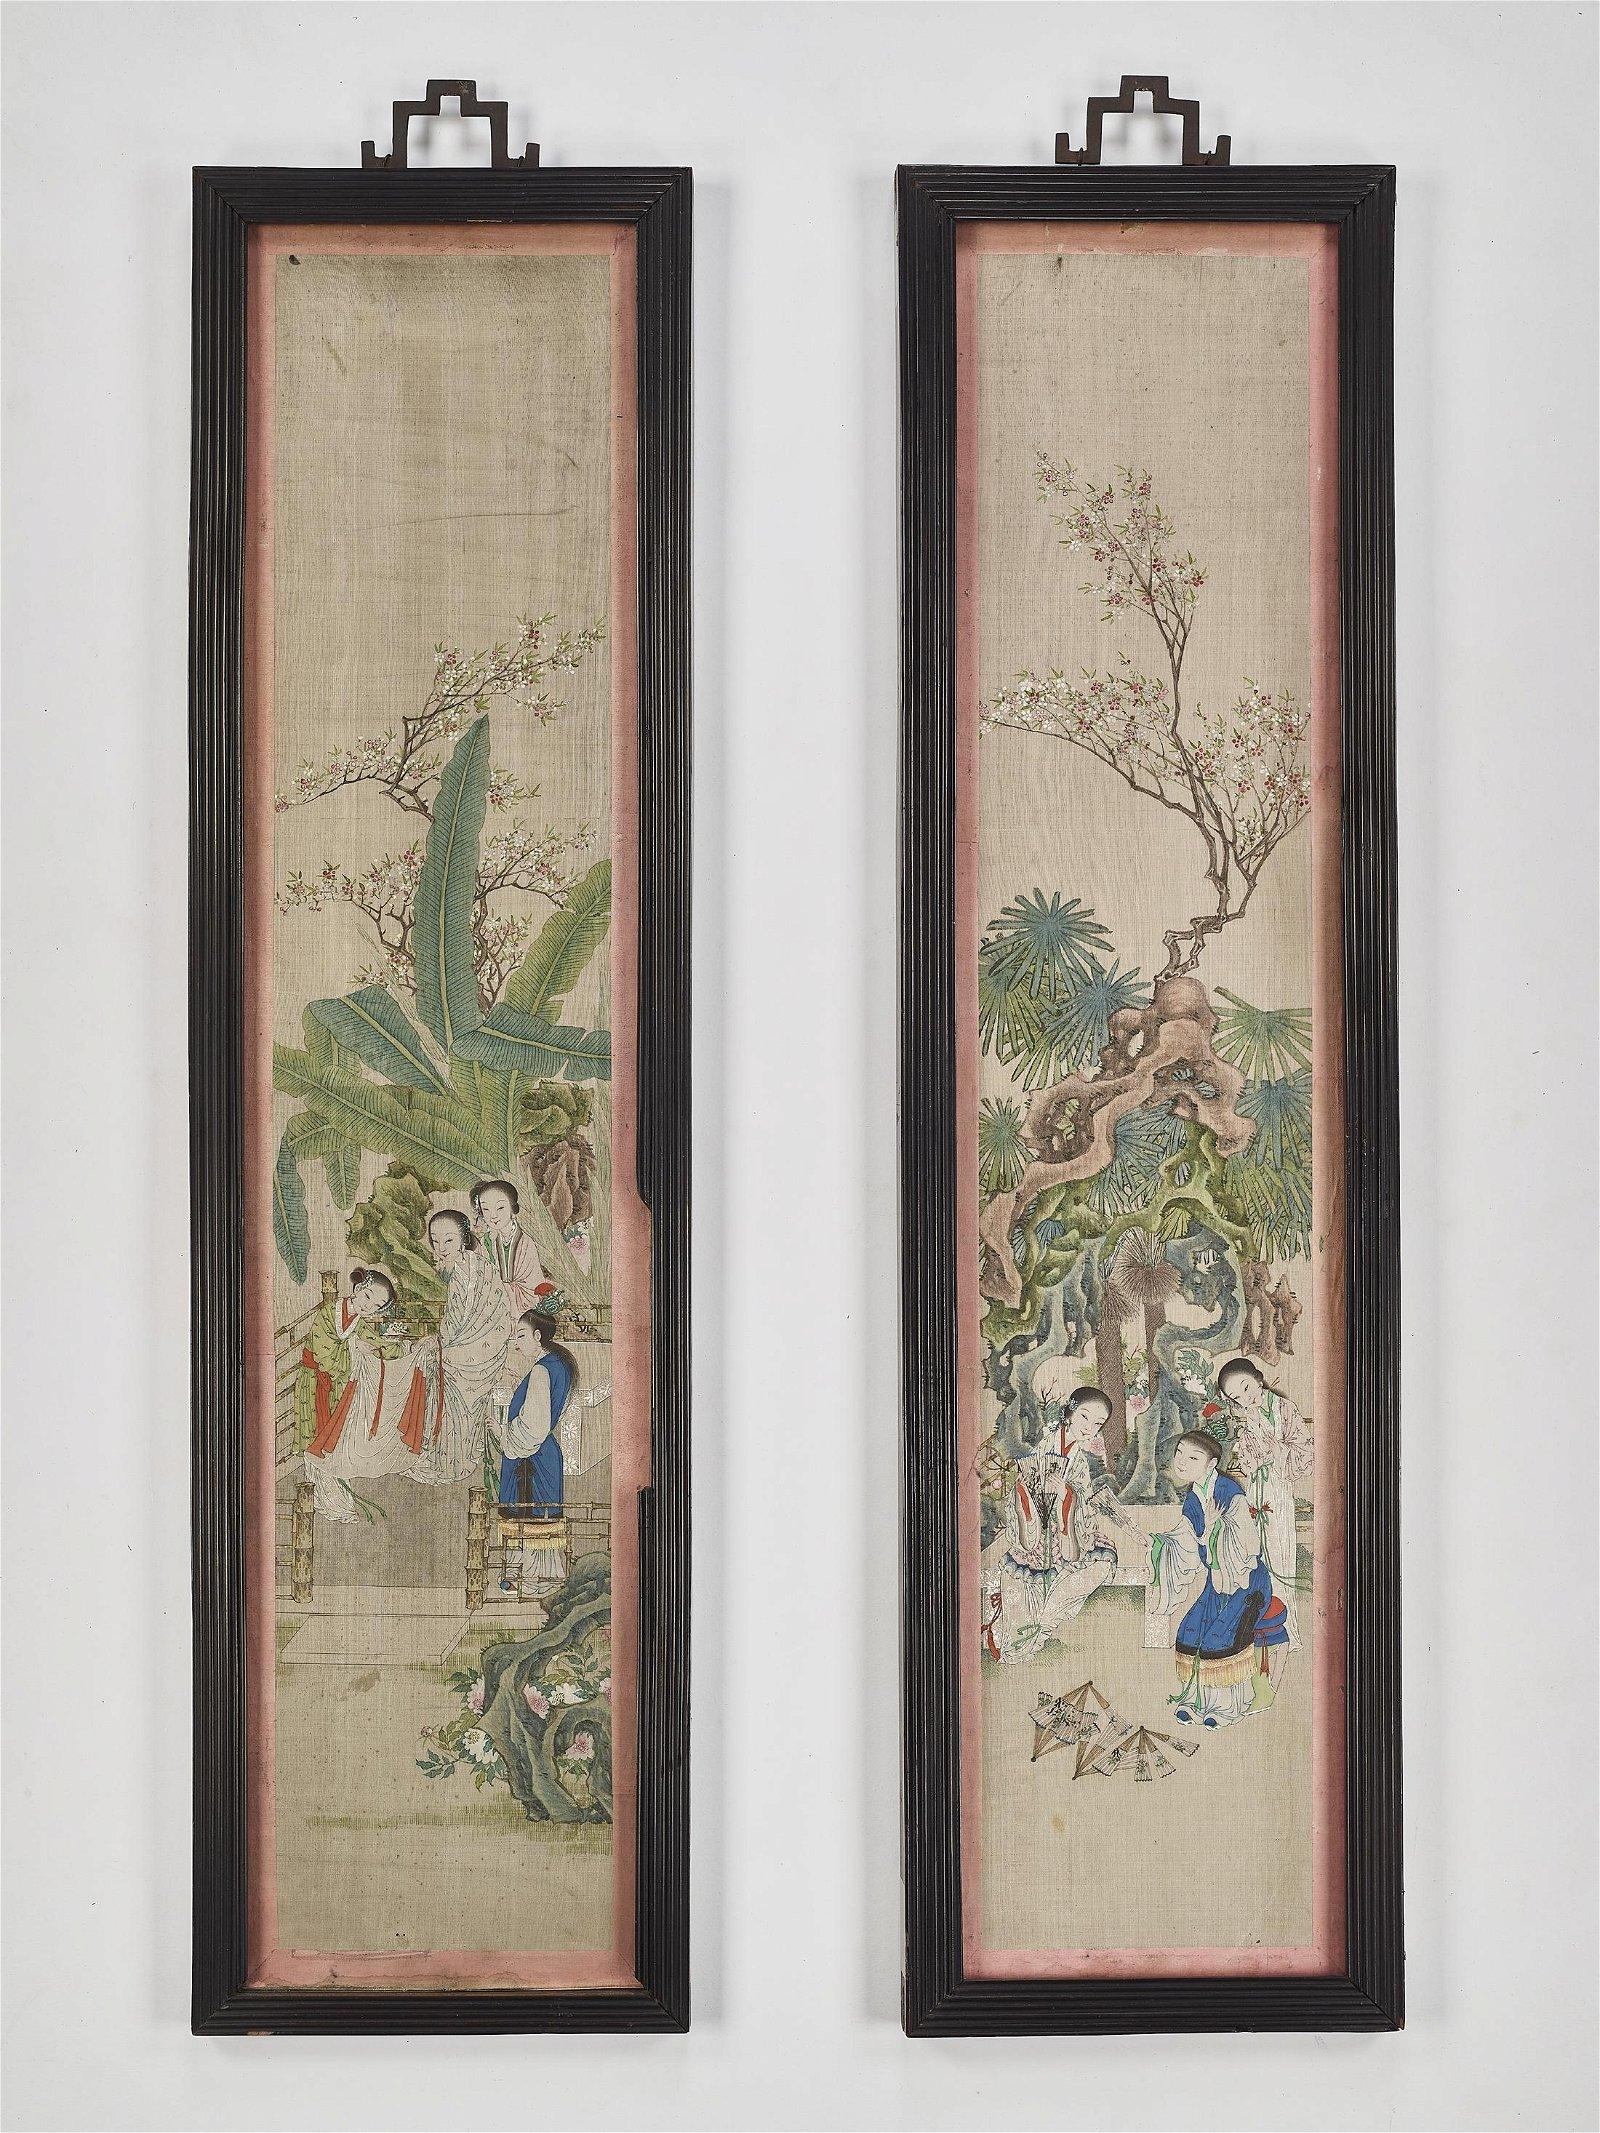 A FINE PAIR OF SILK PAINTINGS, QING